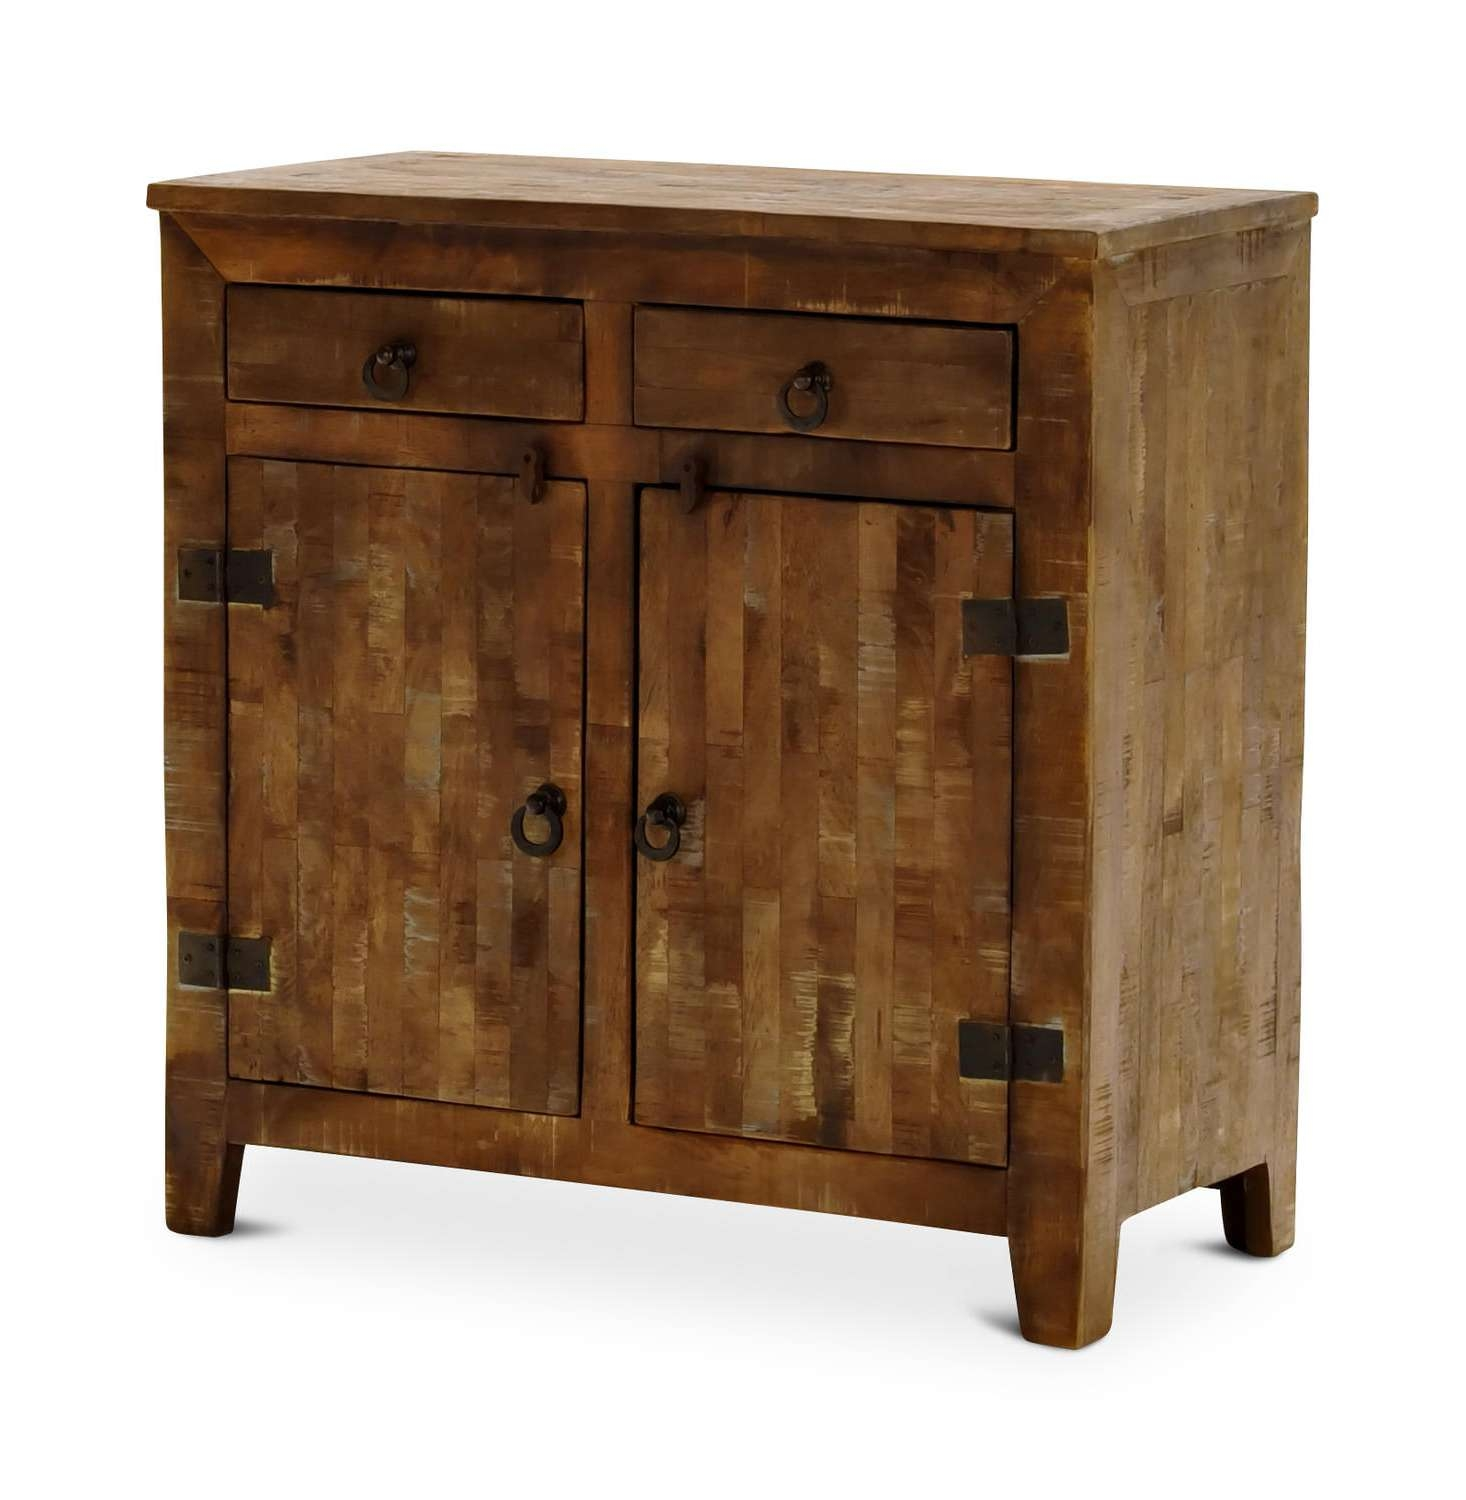 Buffets, China Cabinets And Sideboards – Hom Furniture For Green Sideboards (View 9 of 20)